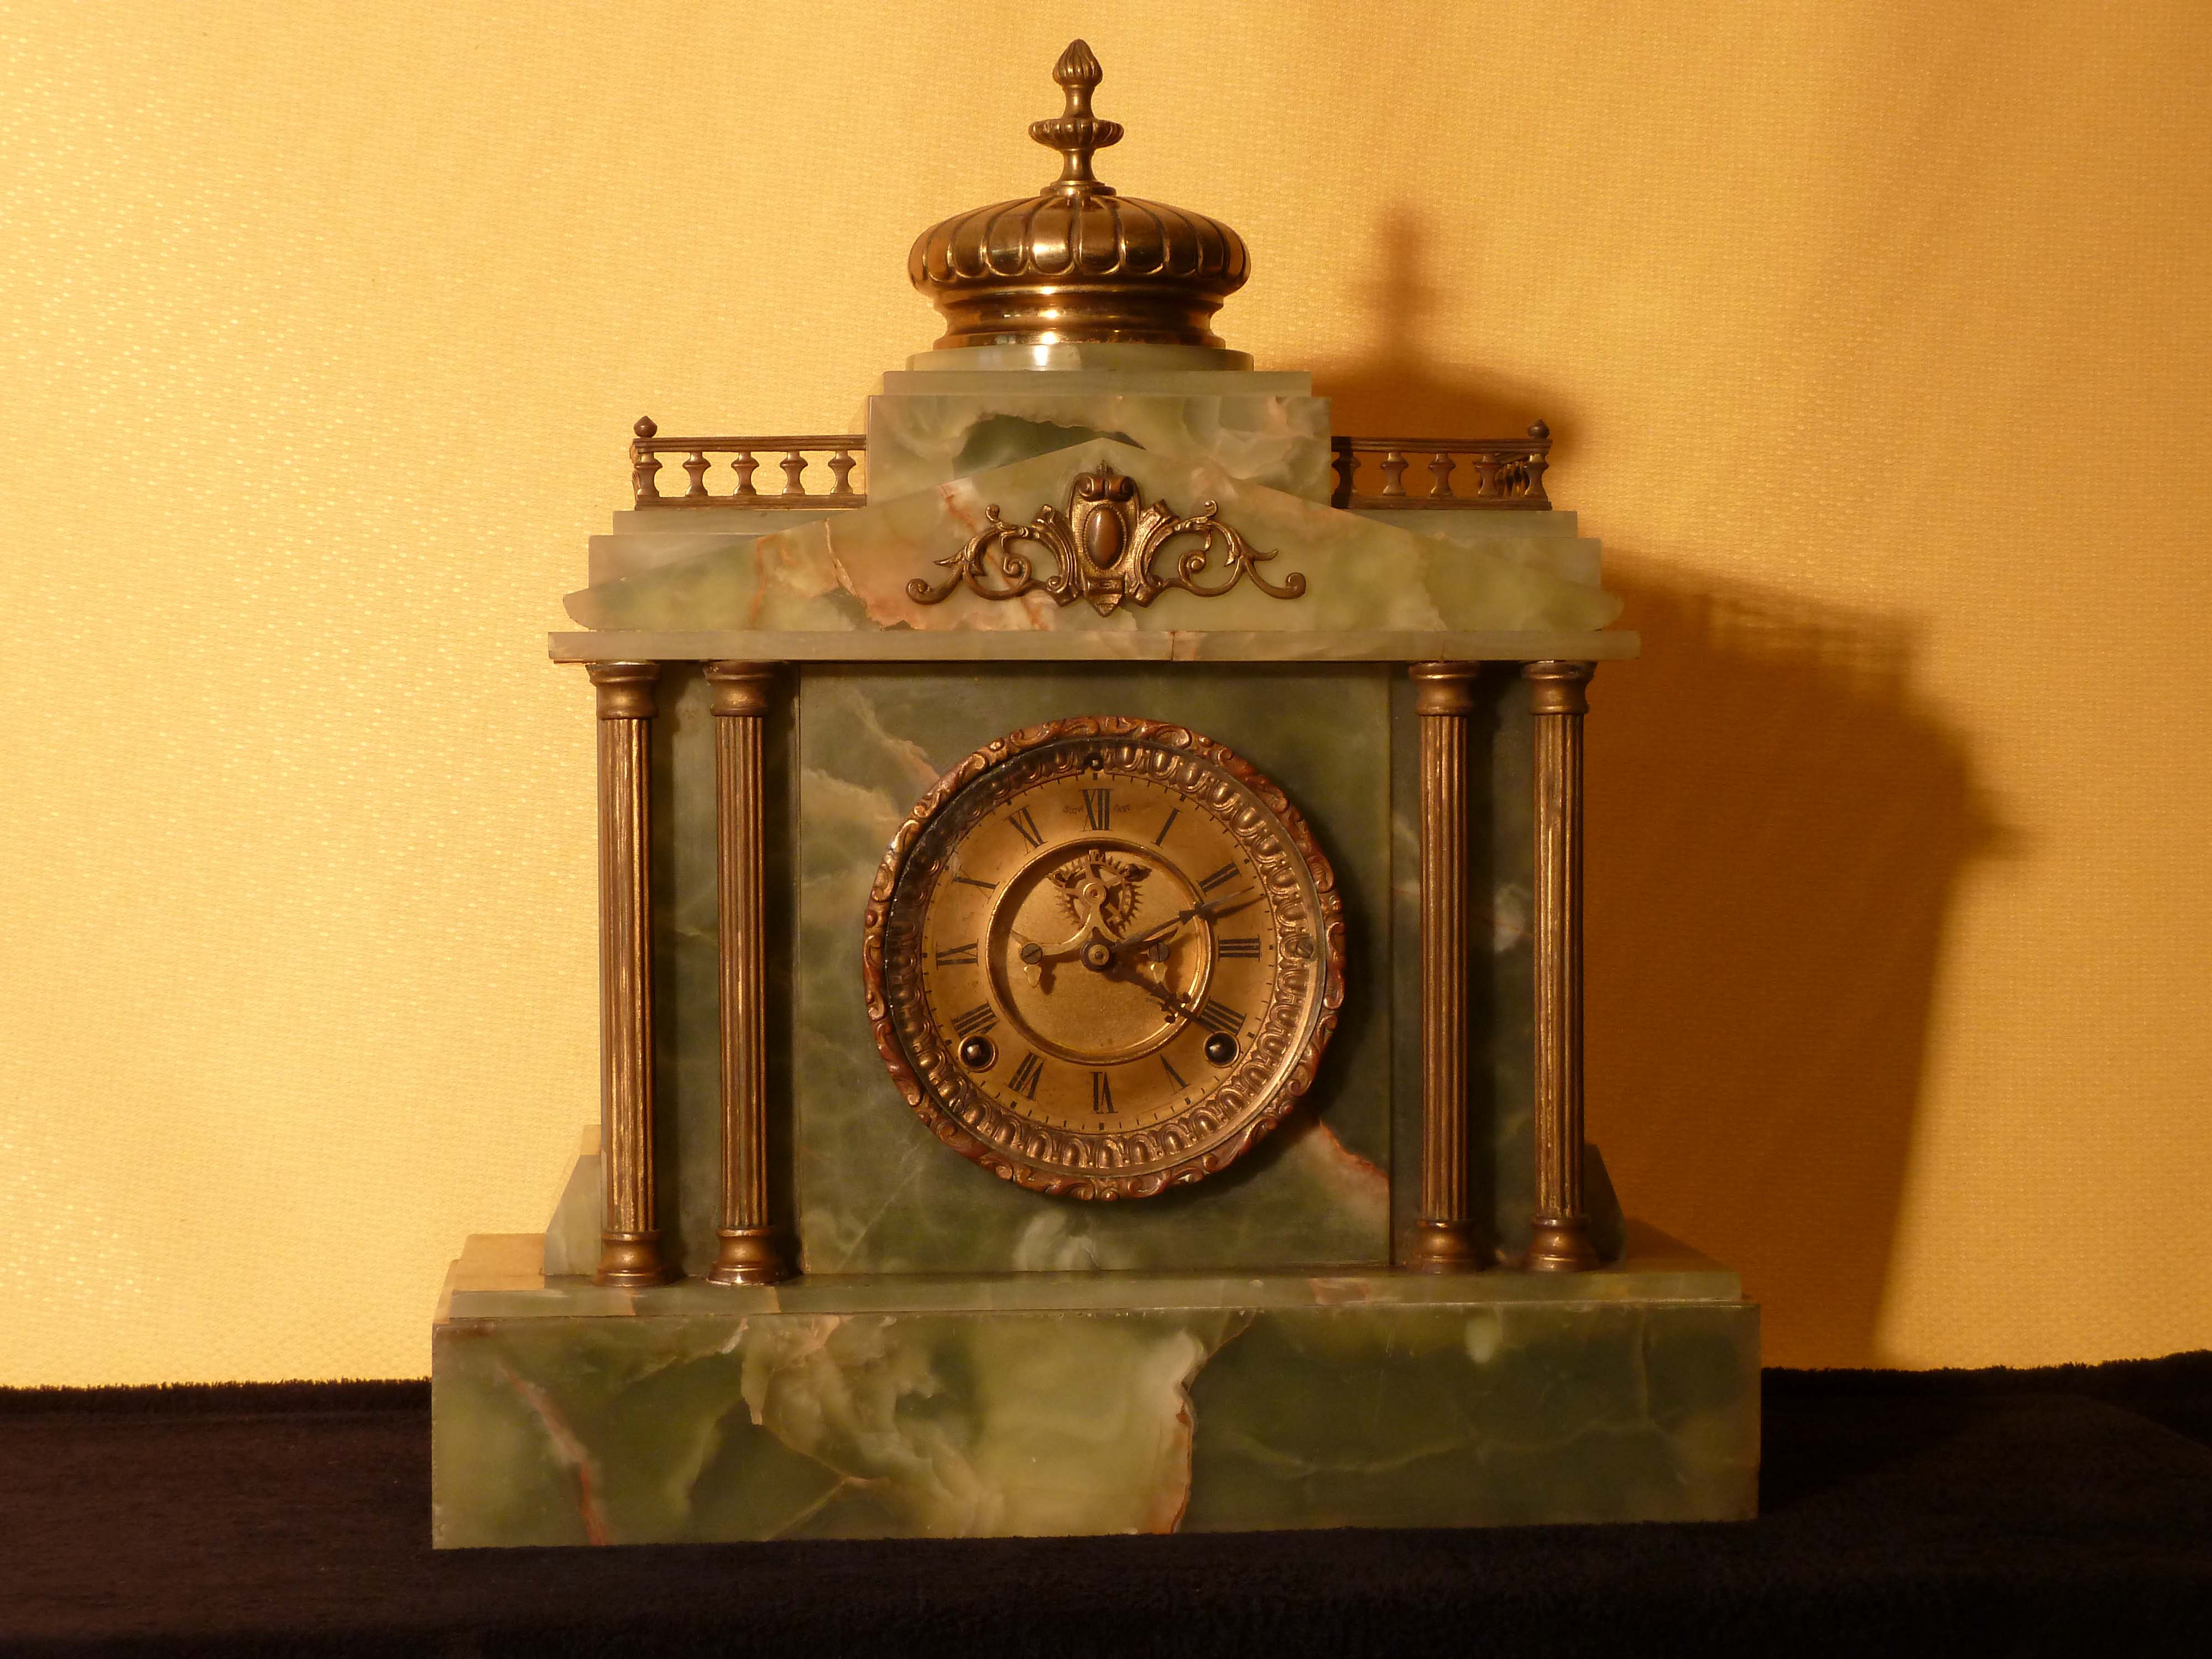 Antique onyx mantel clock